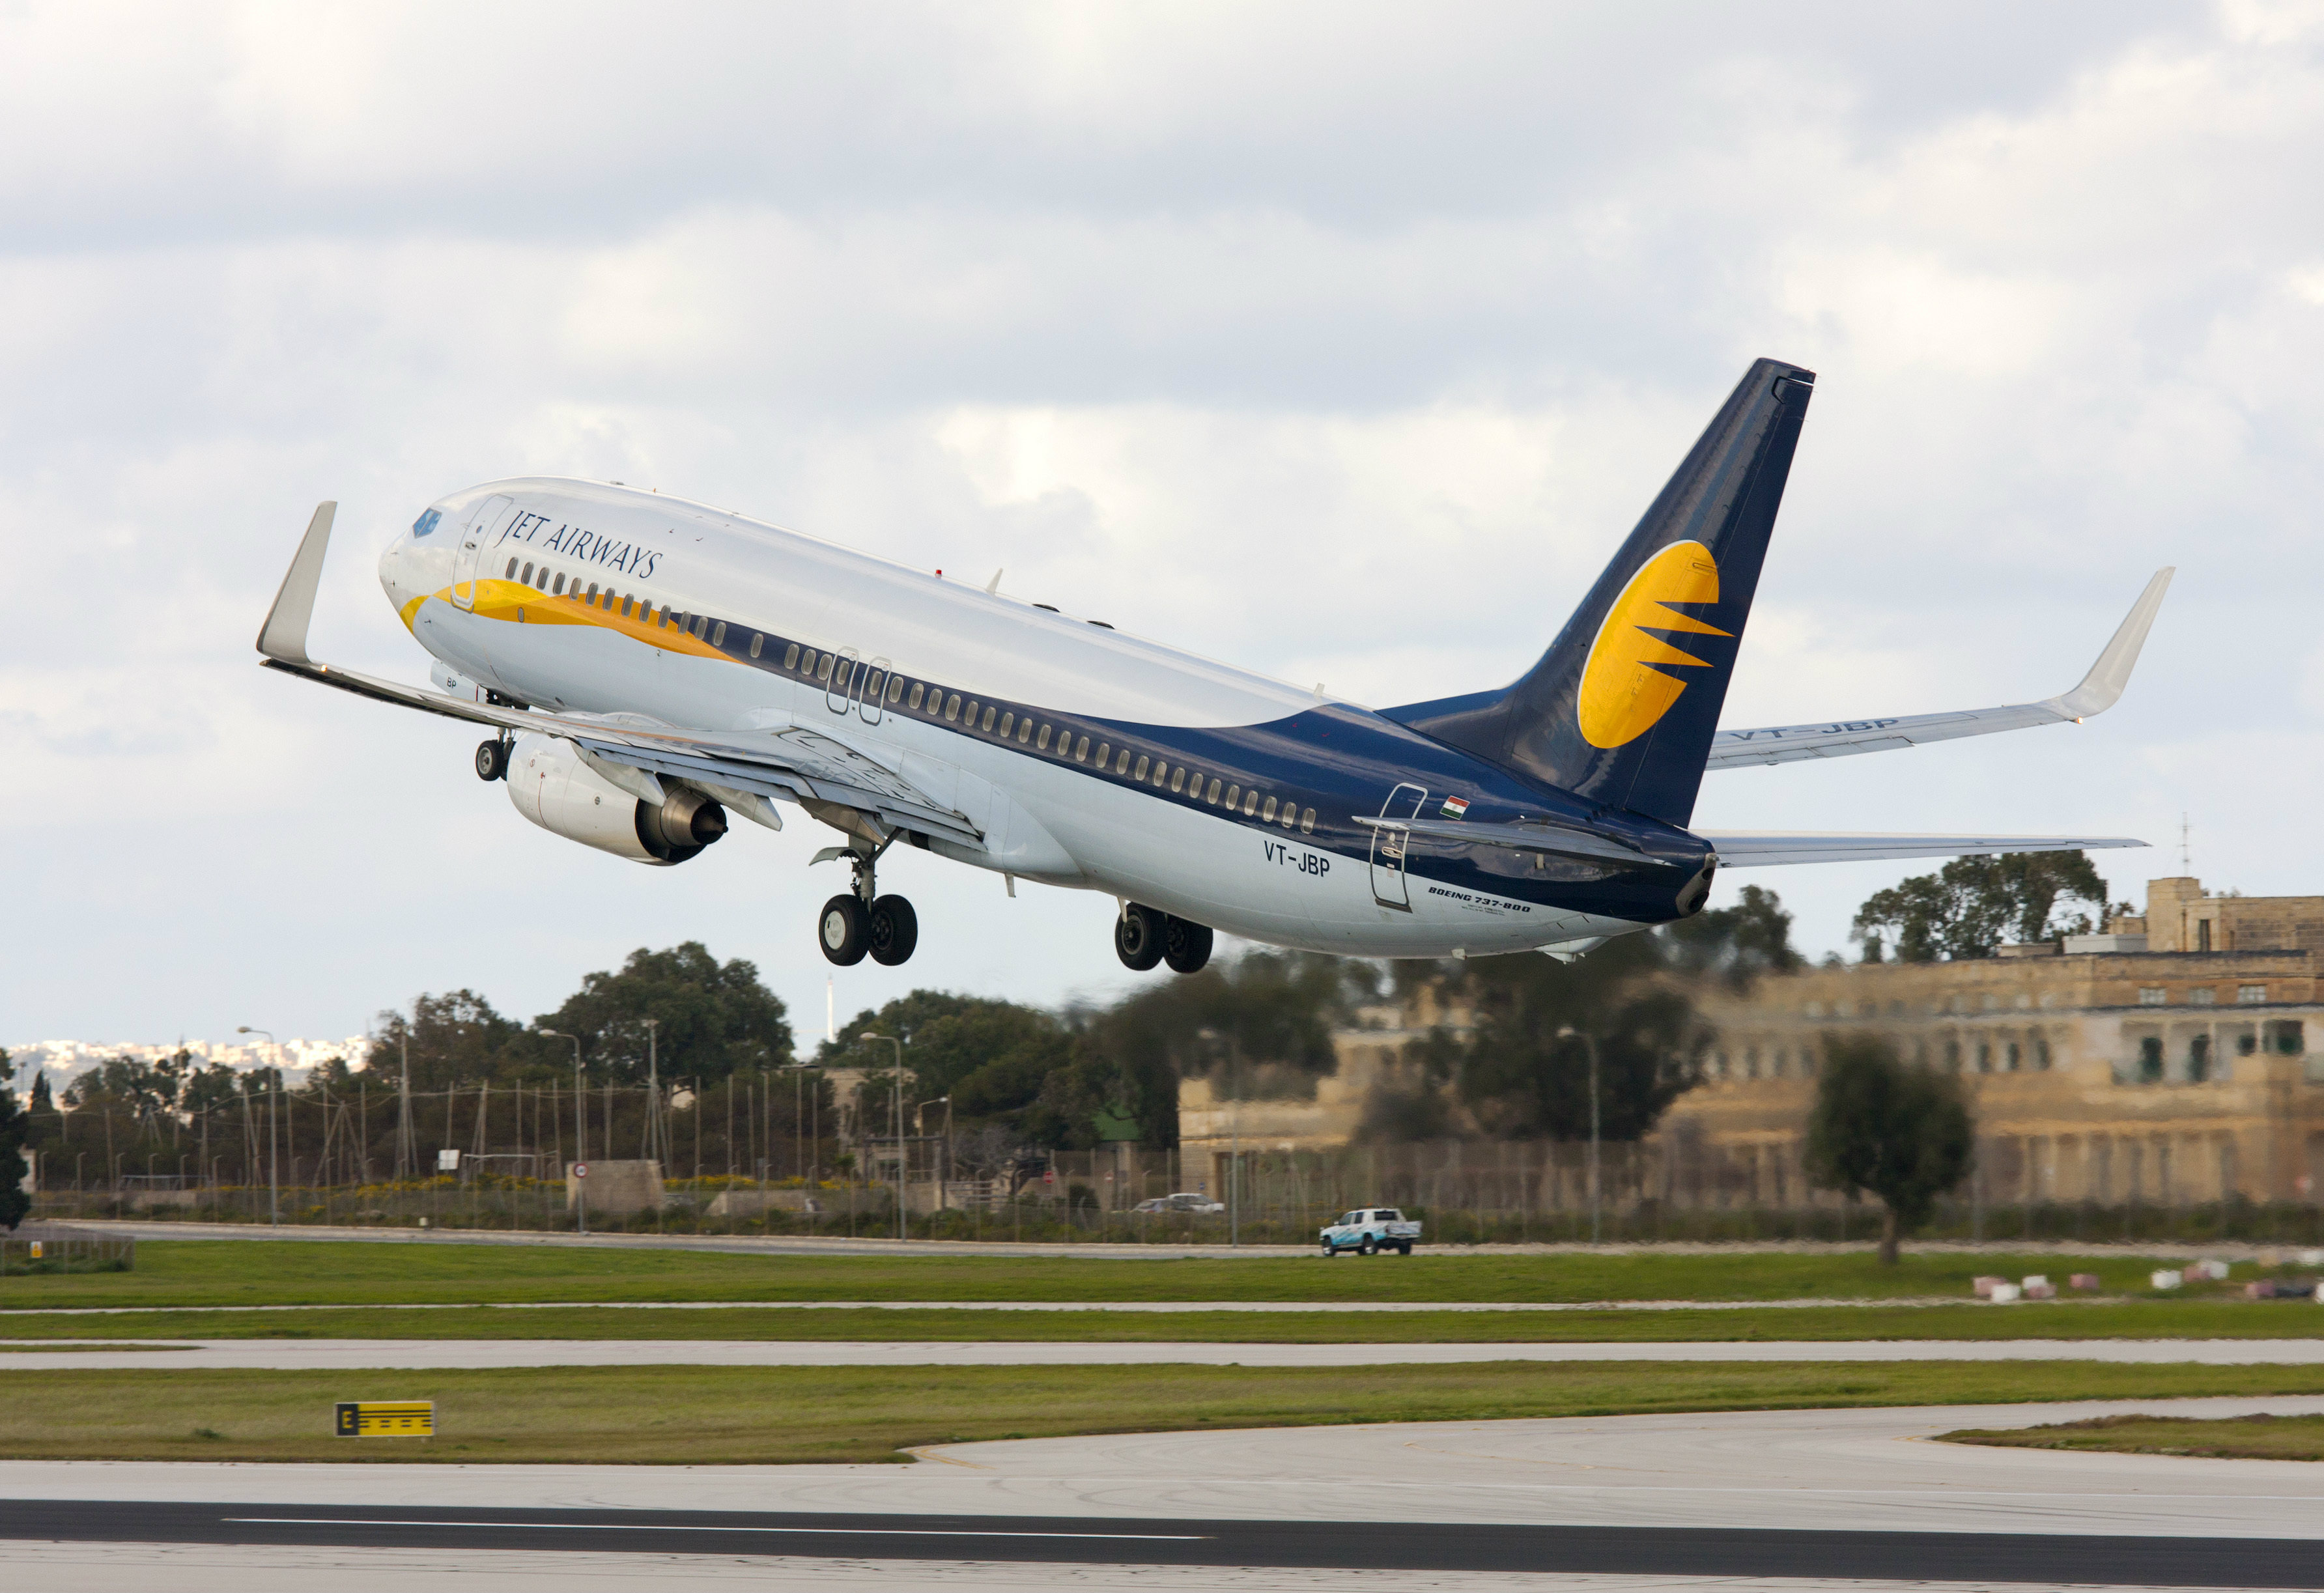 Earlier this month, Jet Airways, which has been making delayed salary payments to the staff, had said it has defaulted on loan repayments to banks.